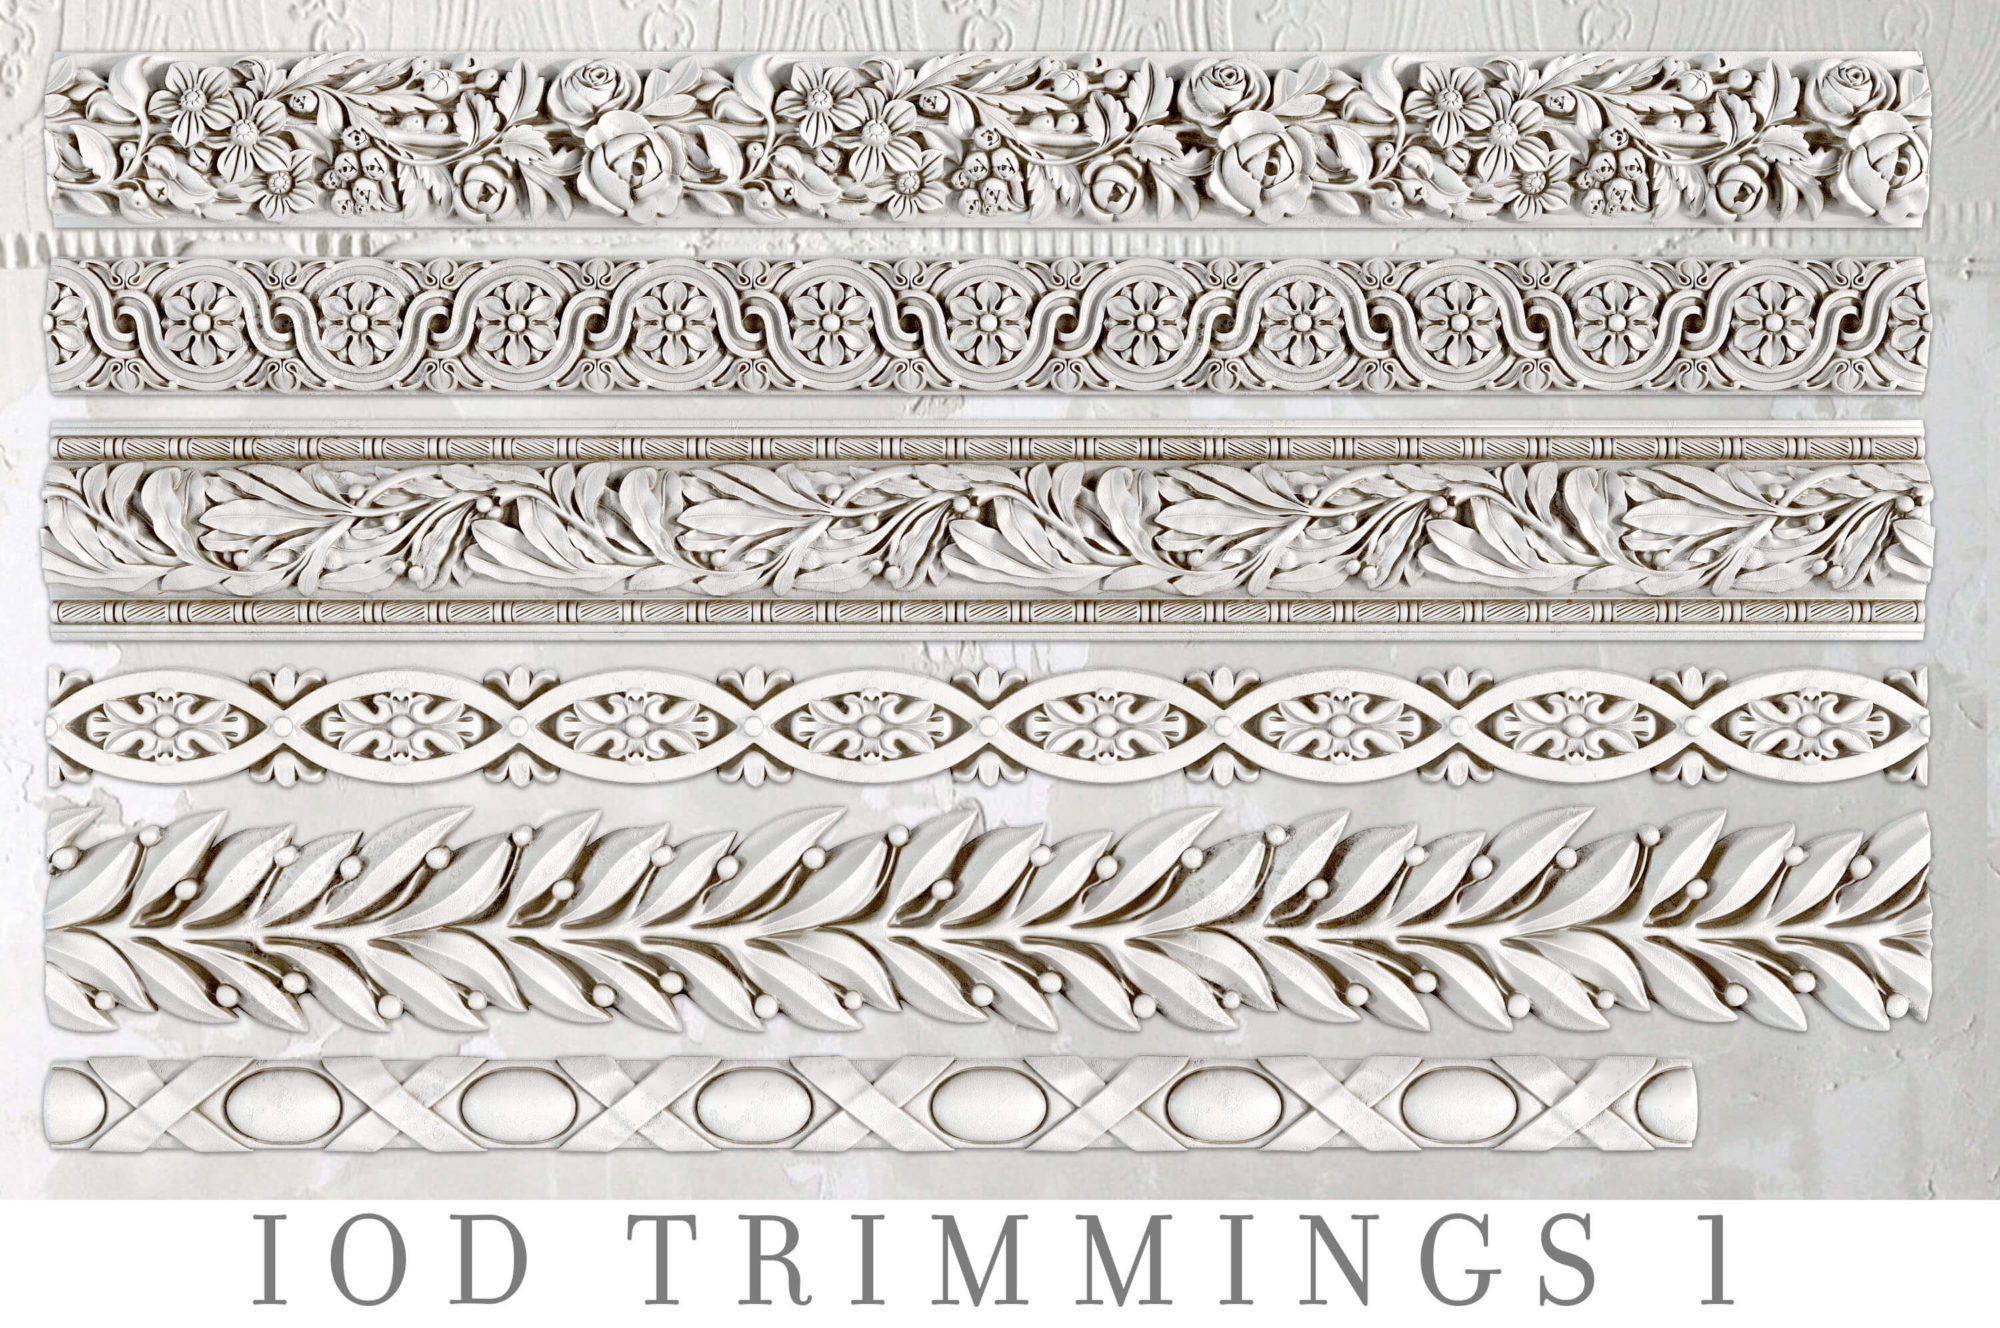 IOD Mould Trimmings 1